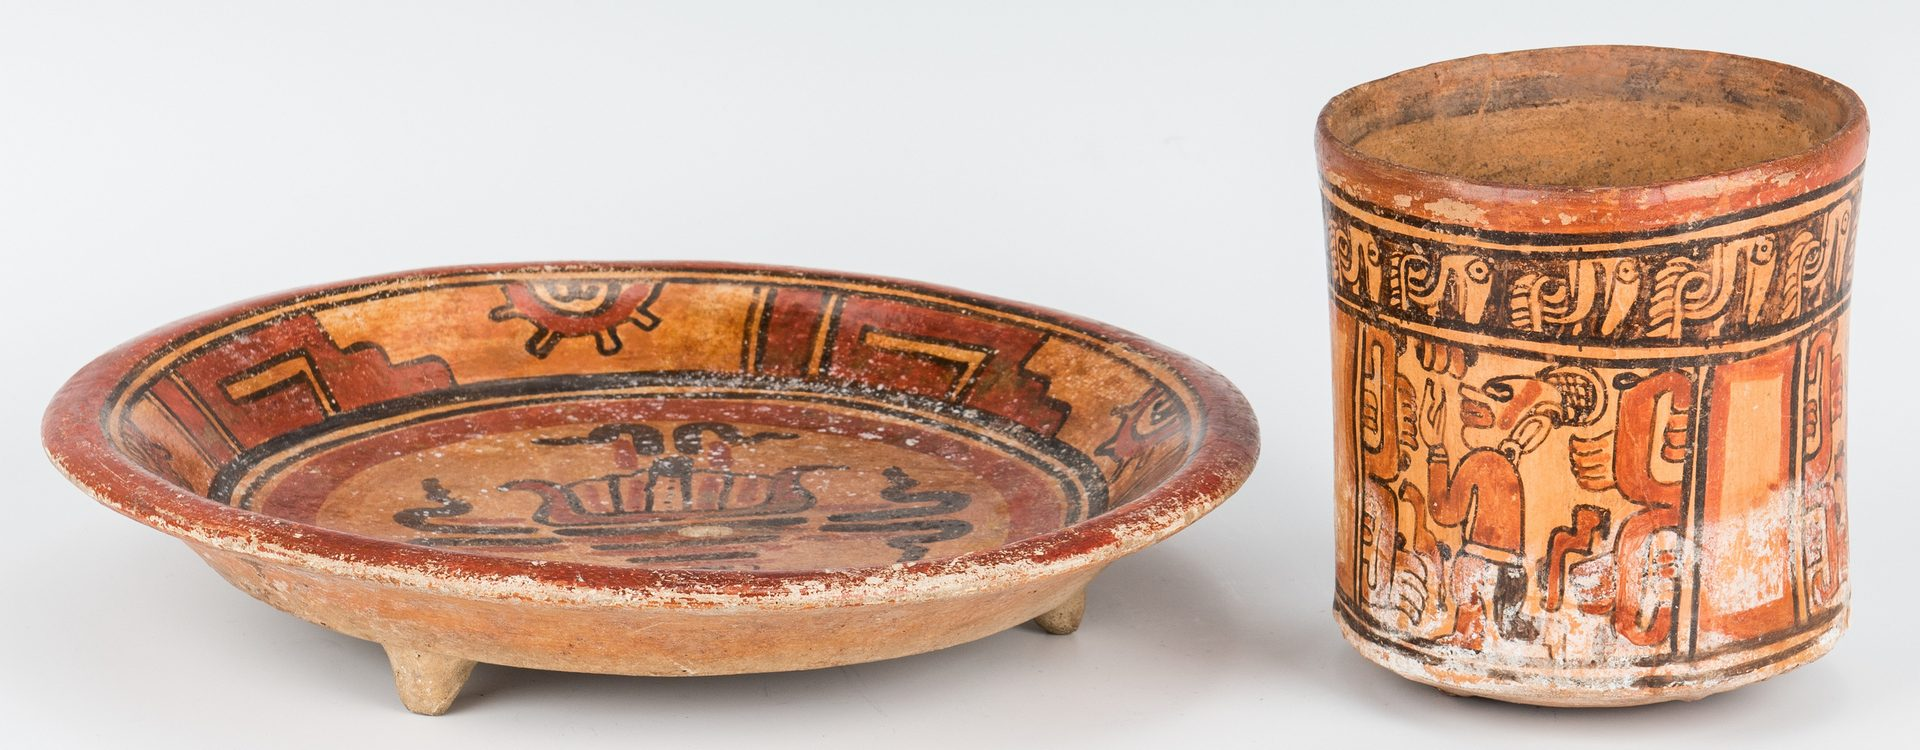 Lot 288: 2 Mayan Polychrome Pottery Items, incl. Honduras Charger